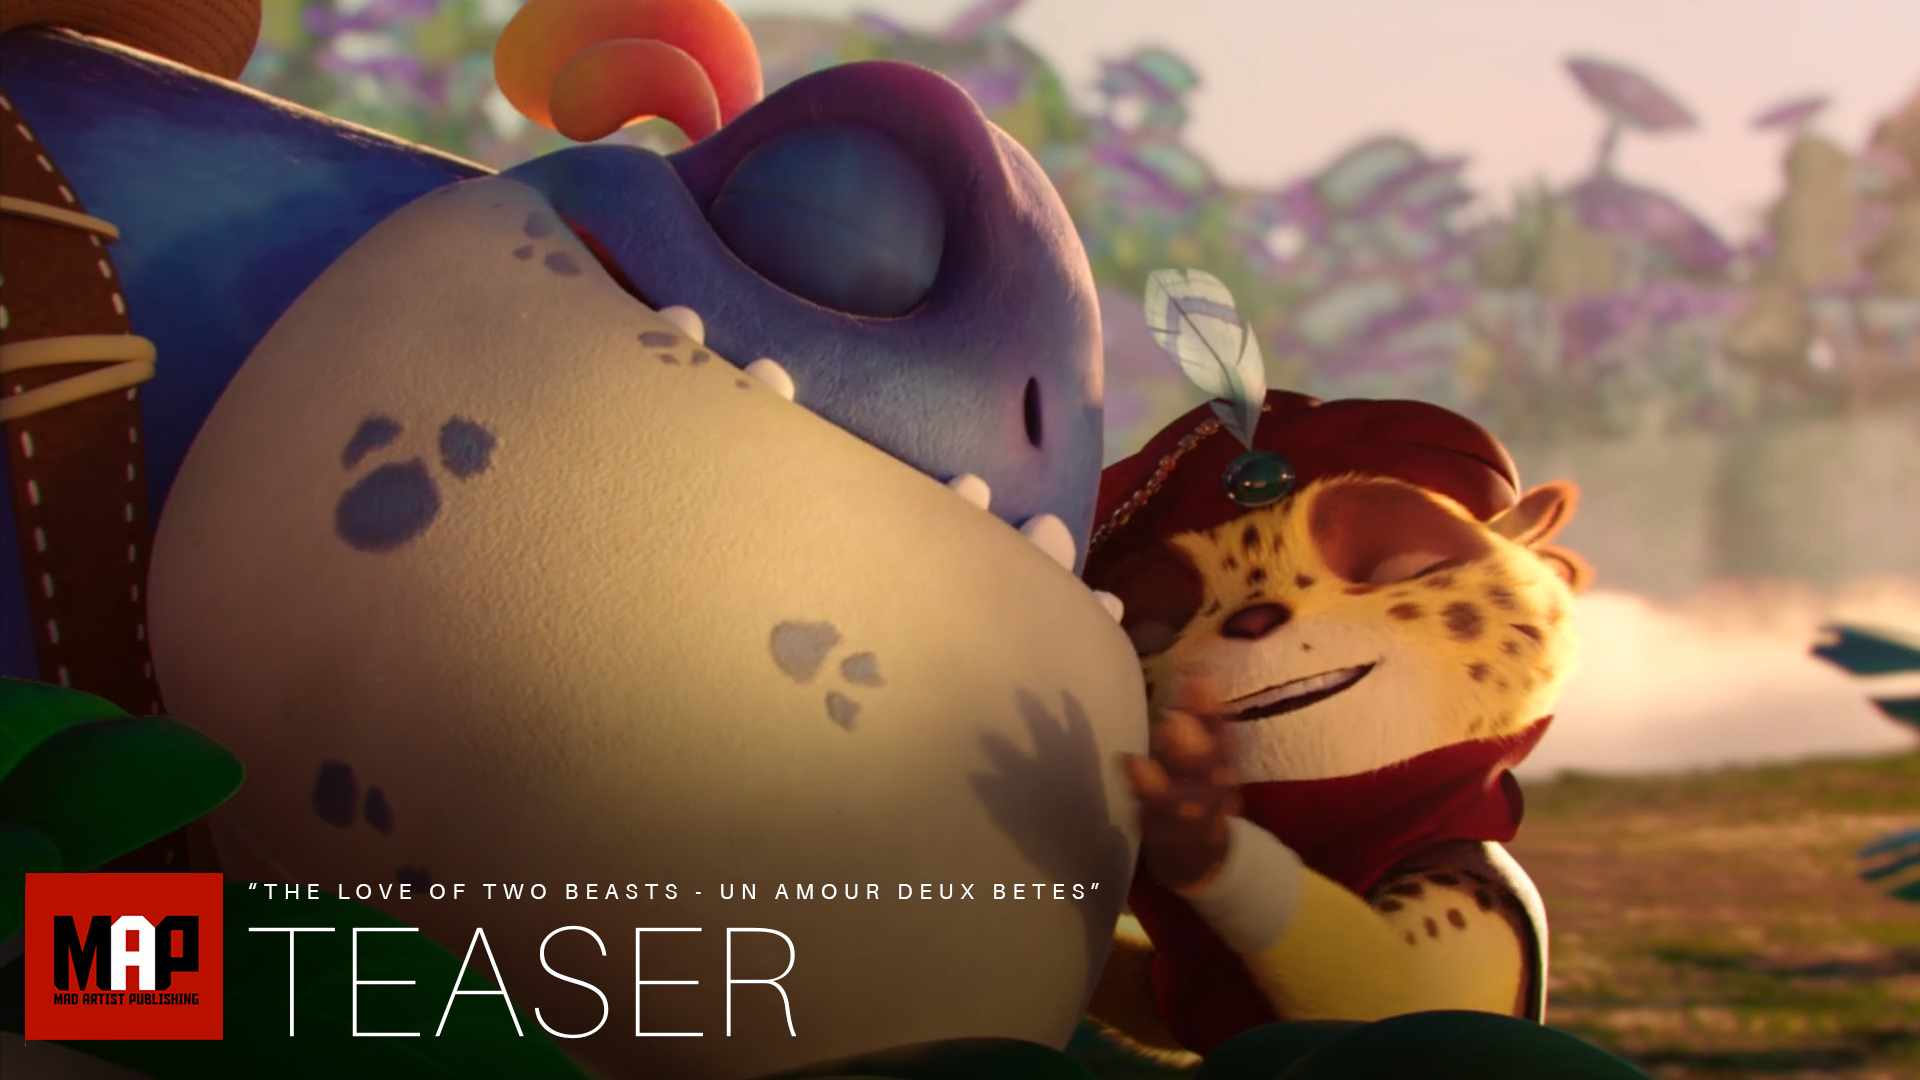 TRAILER | Cute CGI 3d Animated Short Film ** THE LOVE OF TWO BEASTS ** Funny Adventure by IsART Team